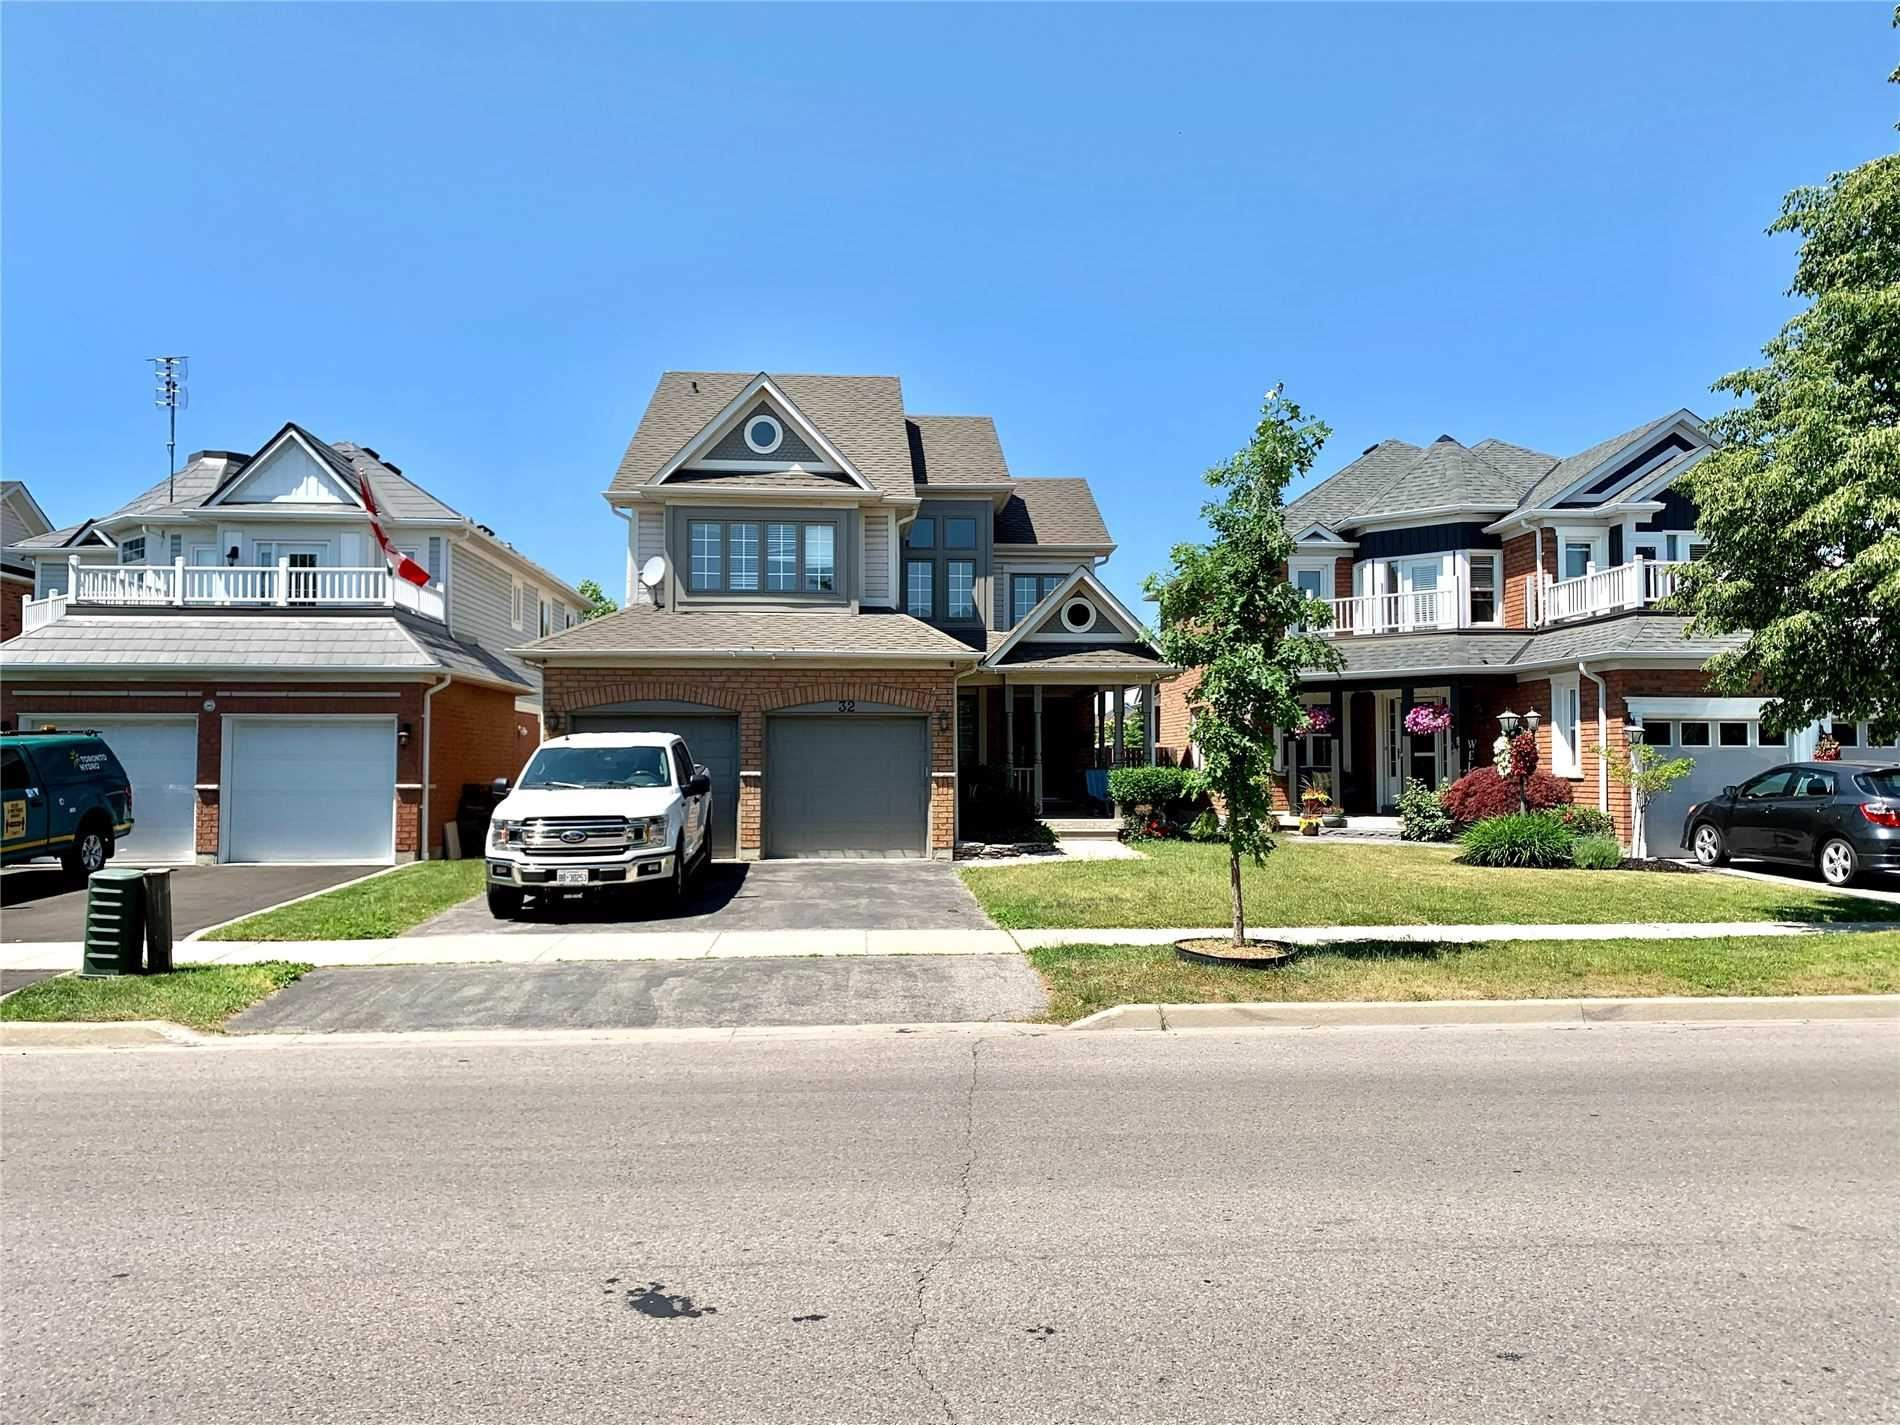 32 Woodlands Ave, Whitby, ON L1R2S9 - MLS#: E5271531